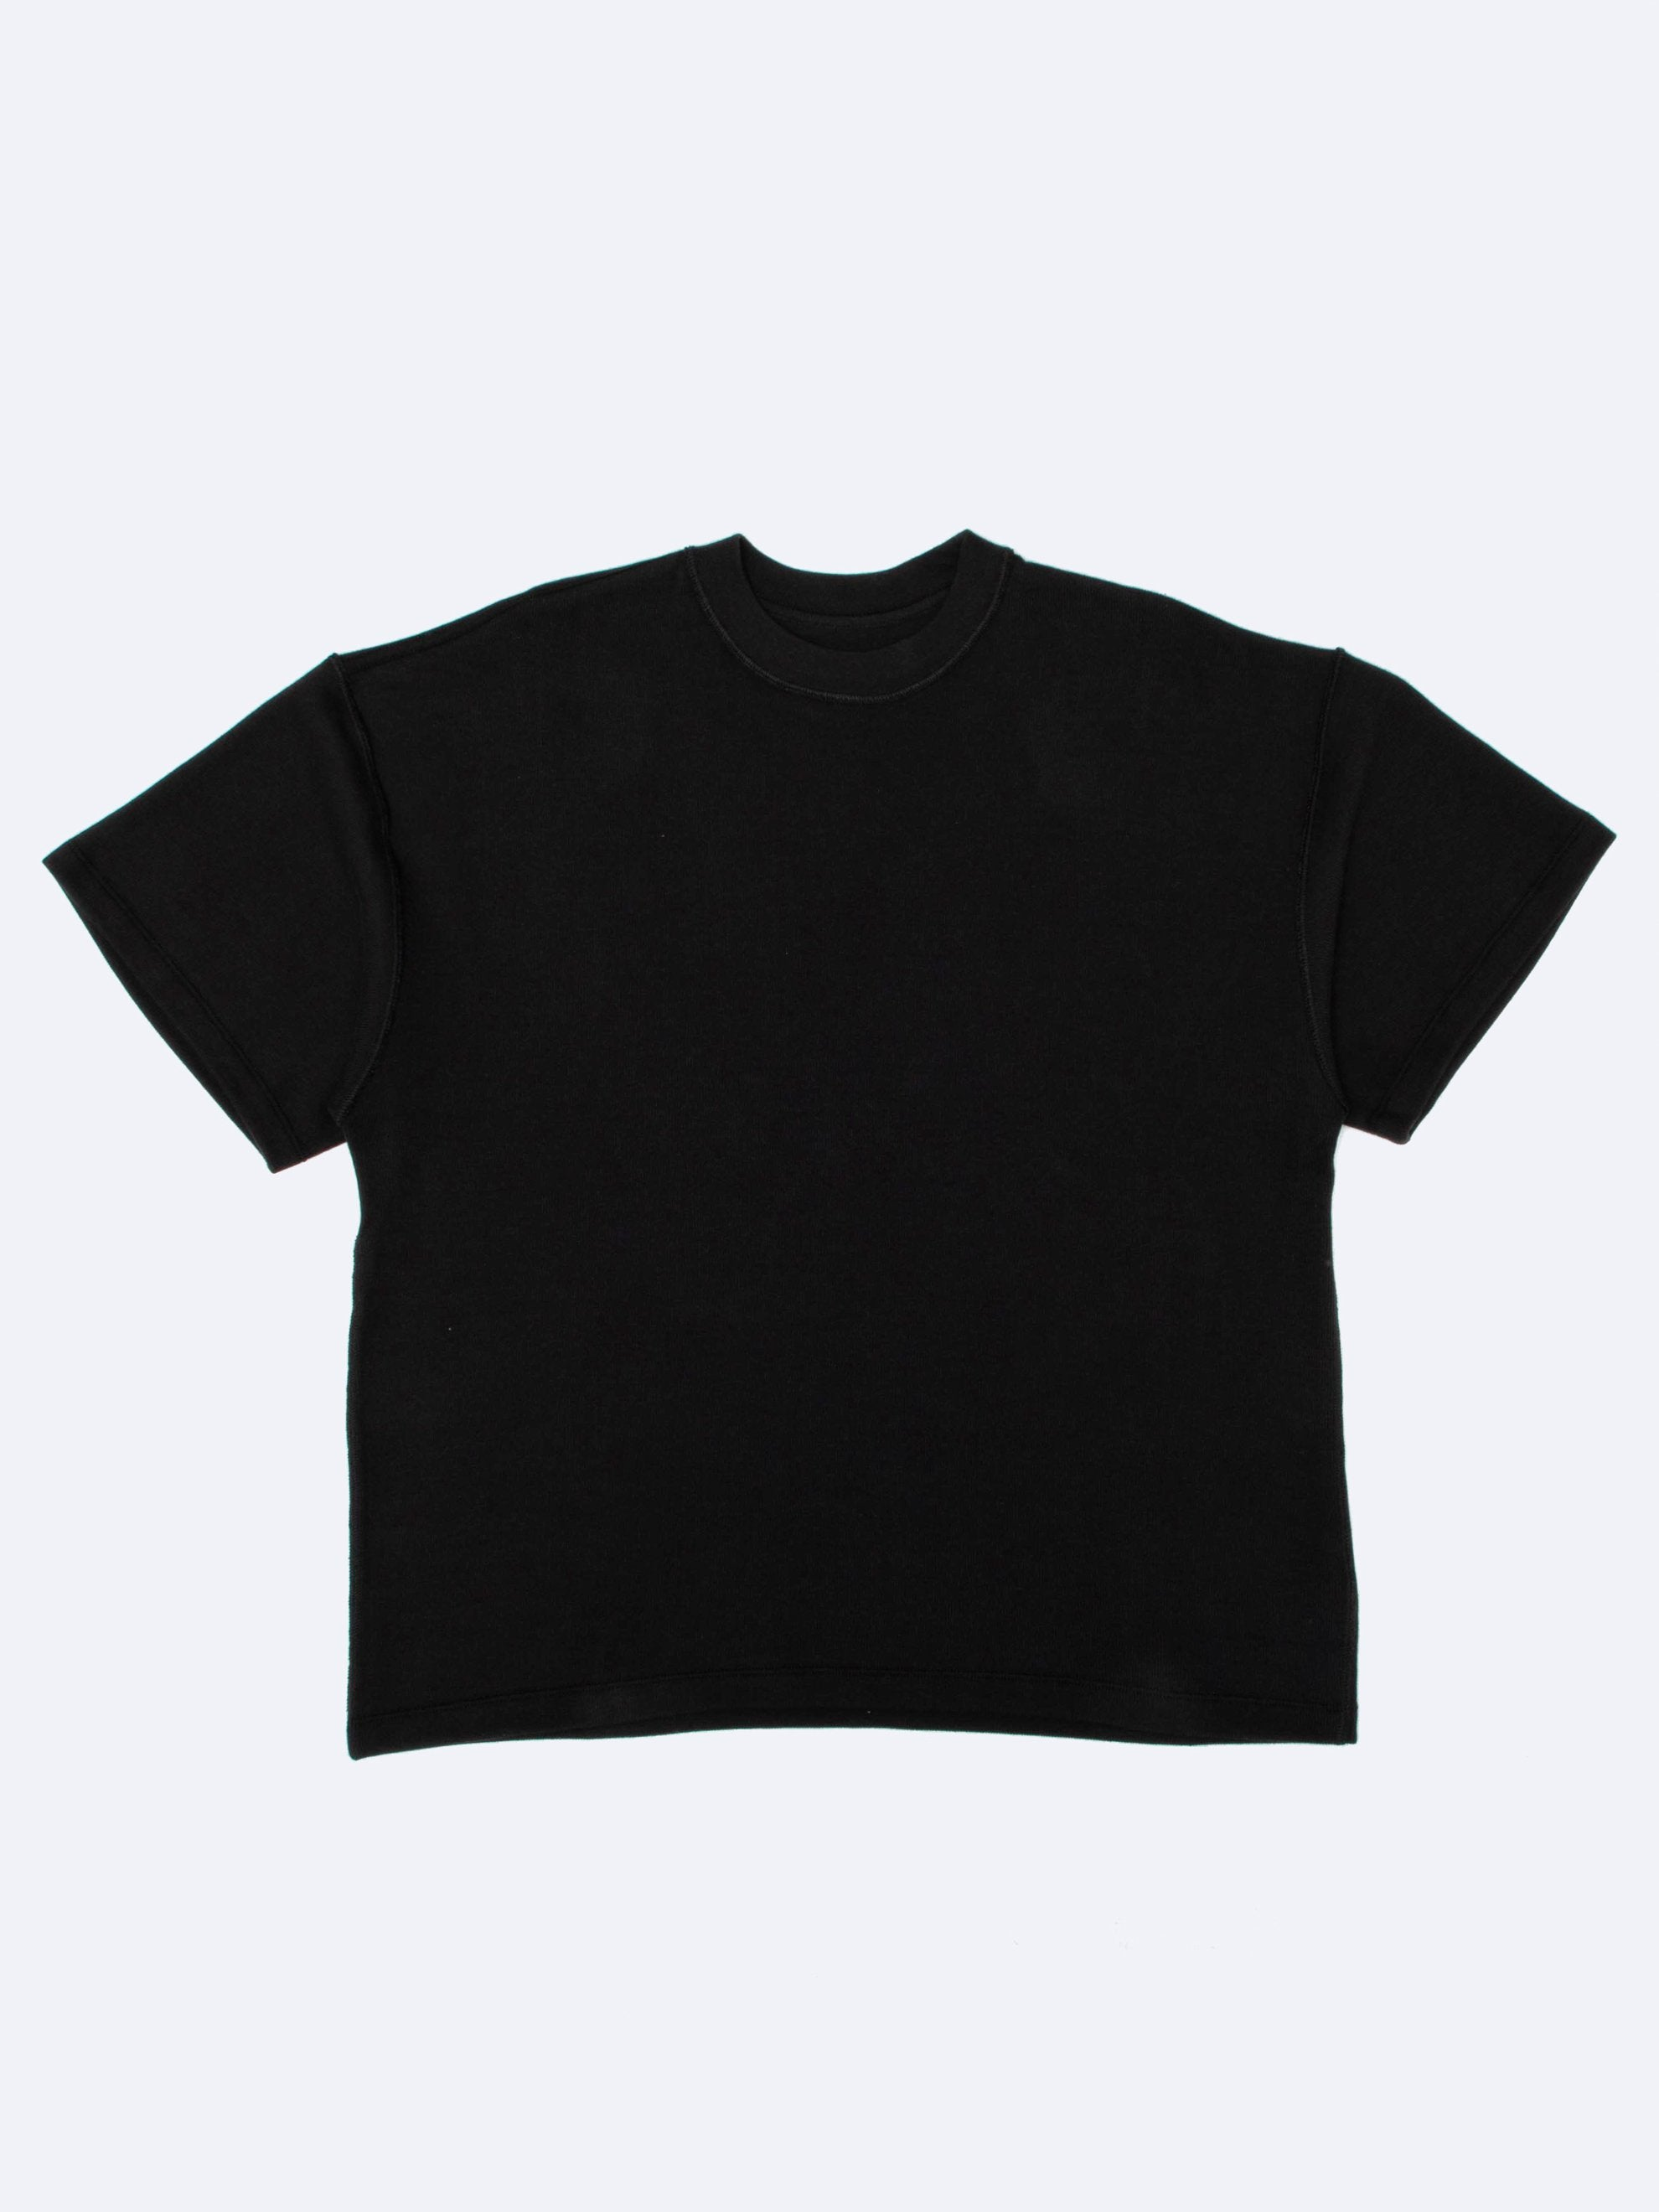 Inside Out S/S T-Shirt